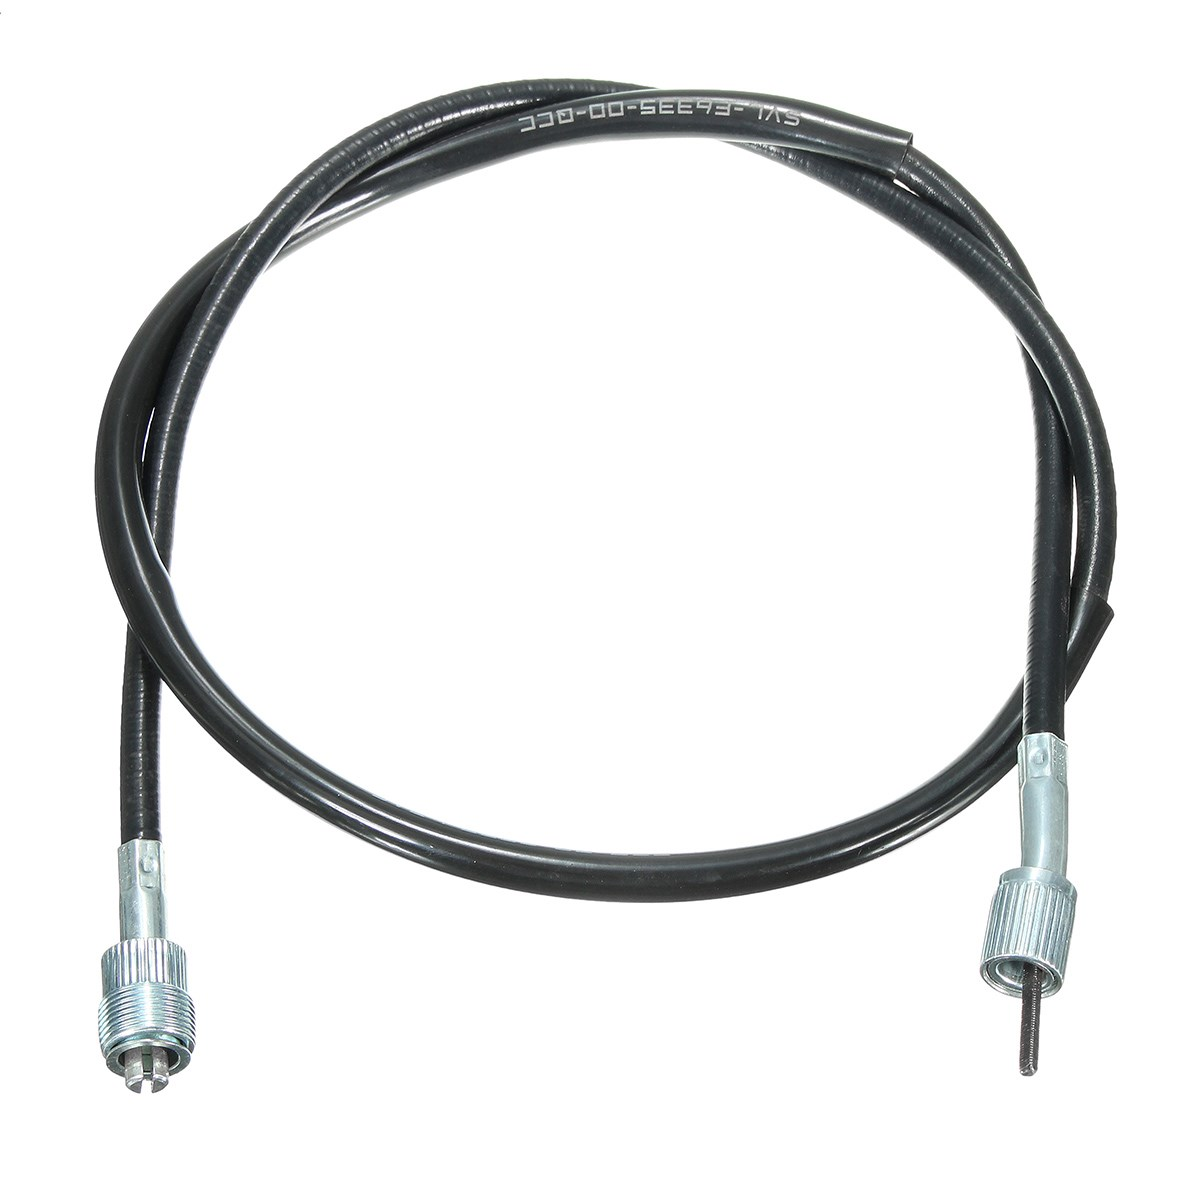 101cm/40 Inch Black For Speedo Cable Flexible Shaft For